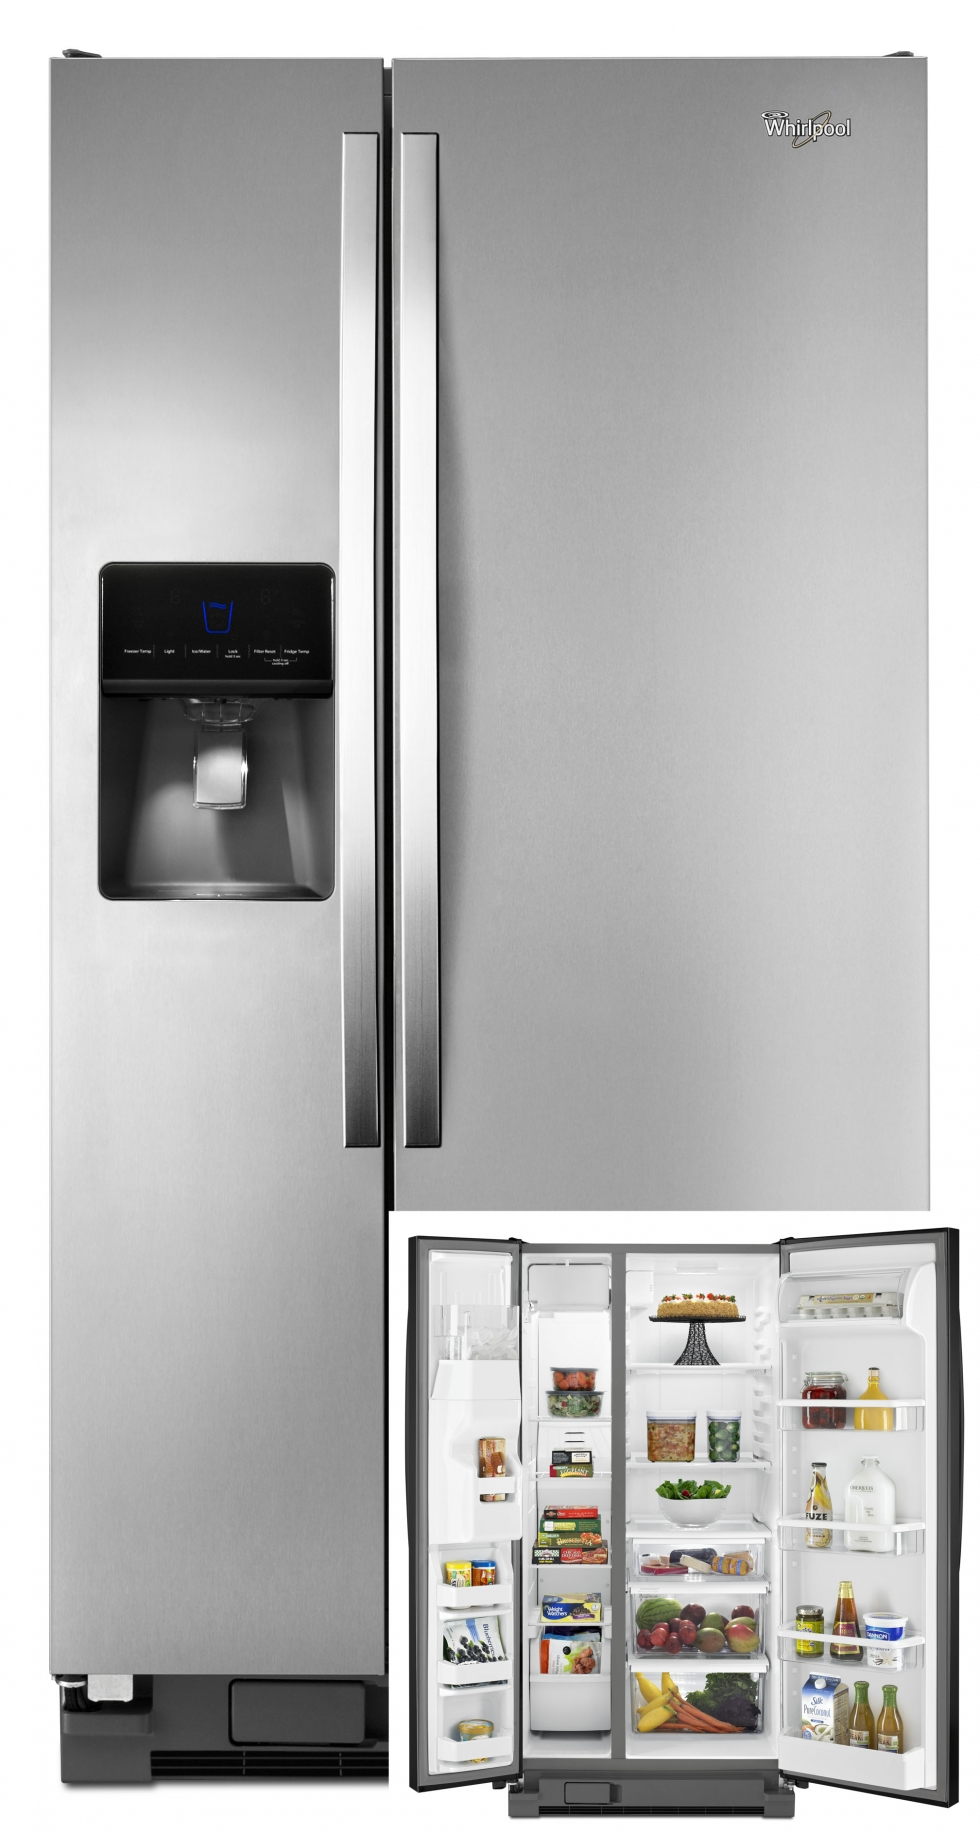 Whirlpool Side-by-Side Refrigerator Stainless Steel